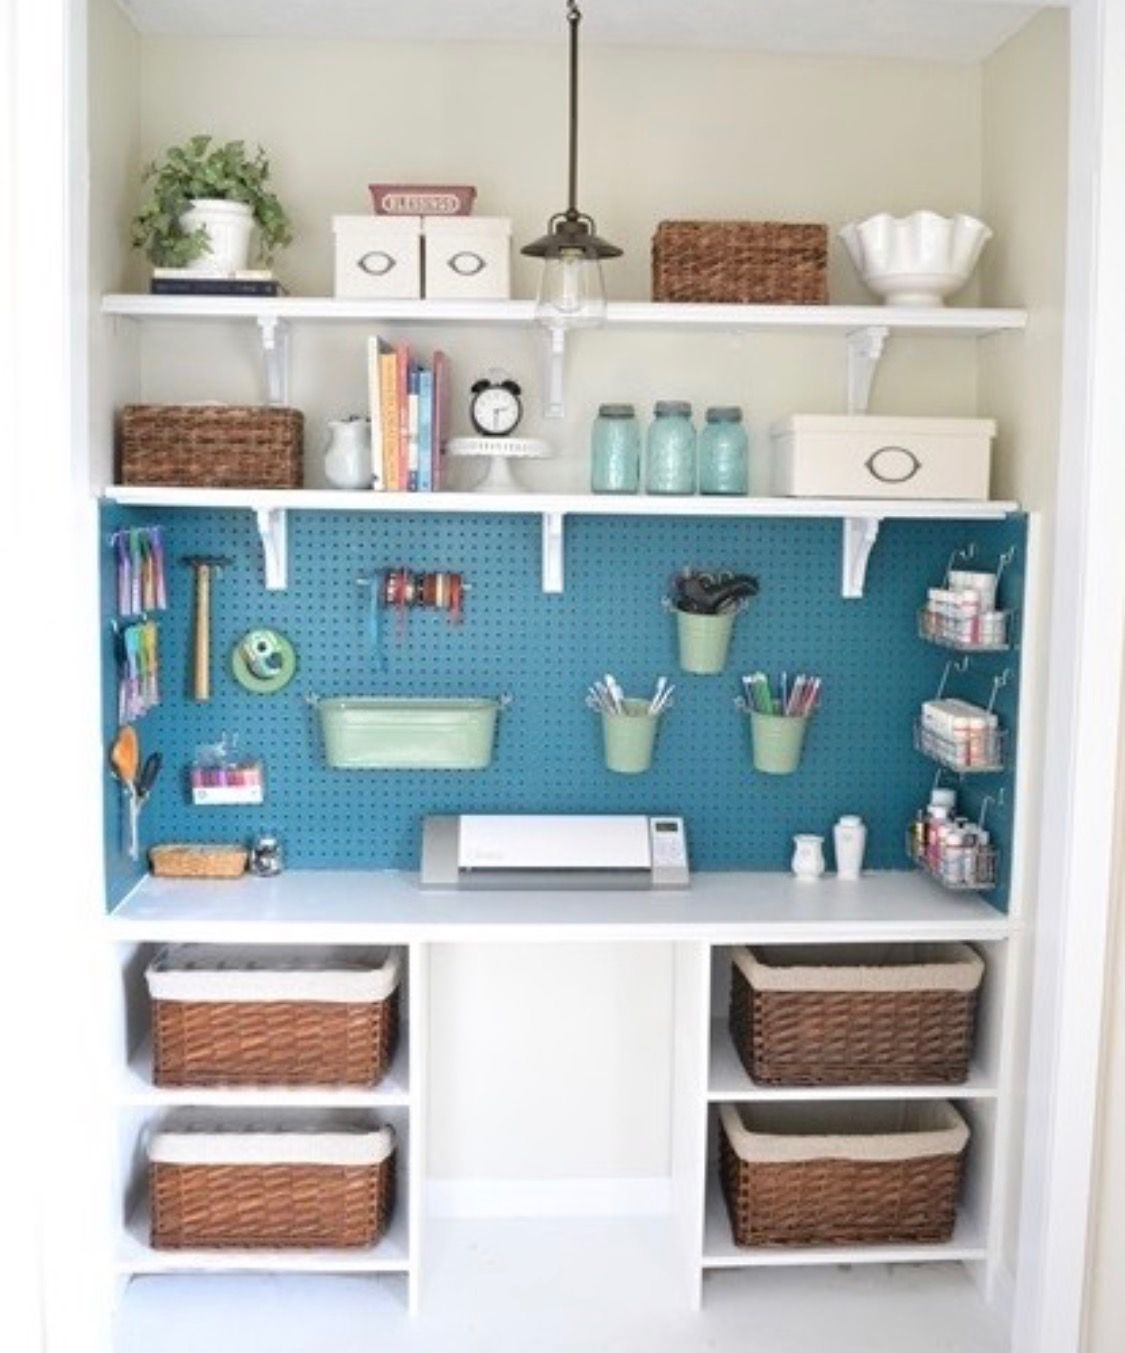 Pin by sharon lee on Sewing/craft organized | Pinterest | Organizing